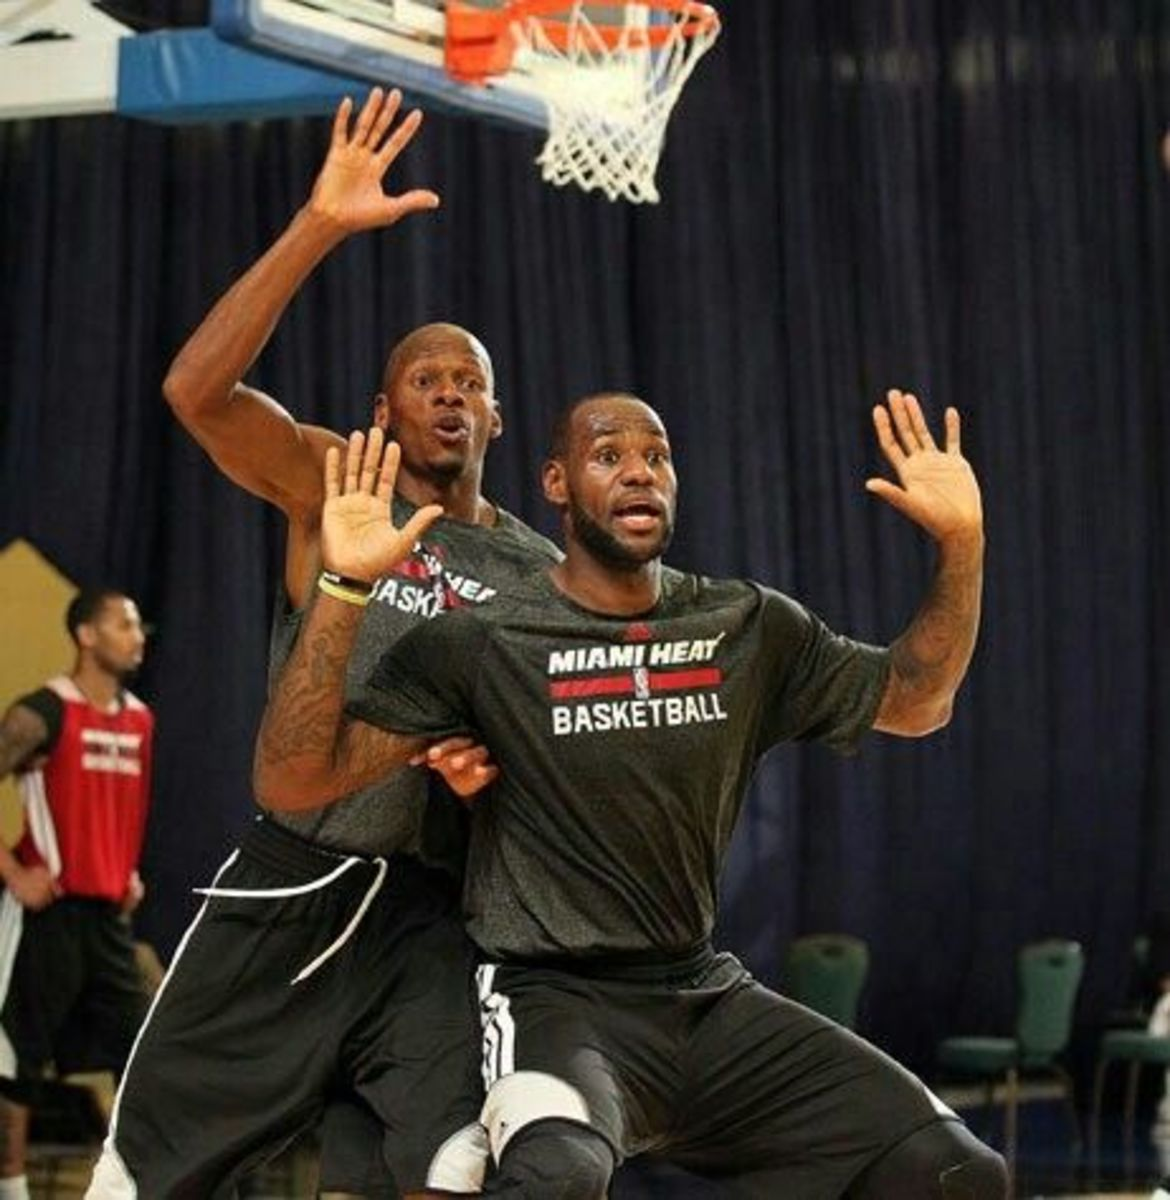 httphubpagescomhubfive-tips-how-to-be-a-good-basketball-player